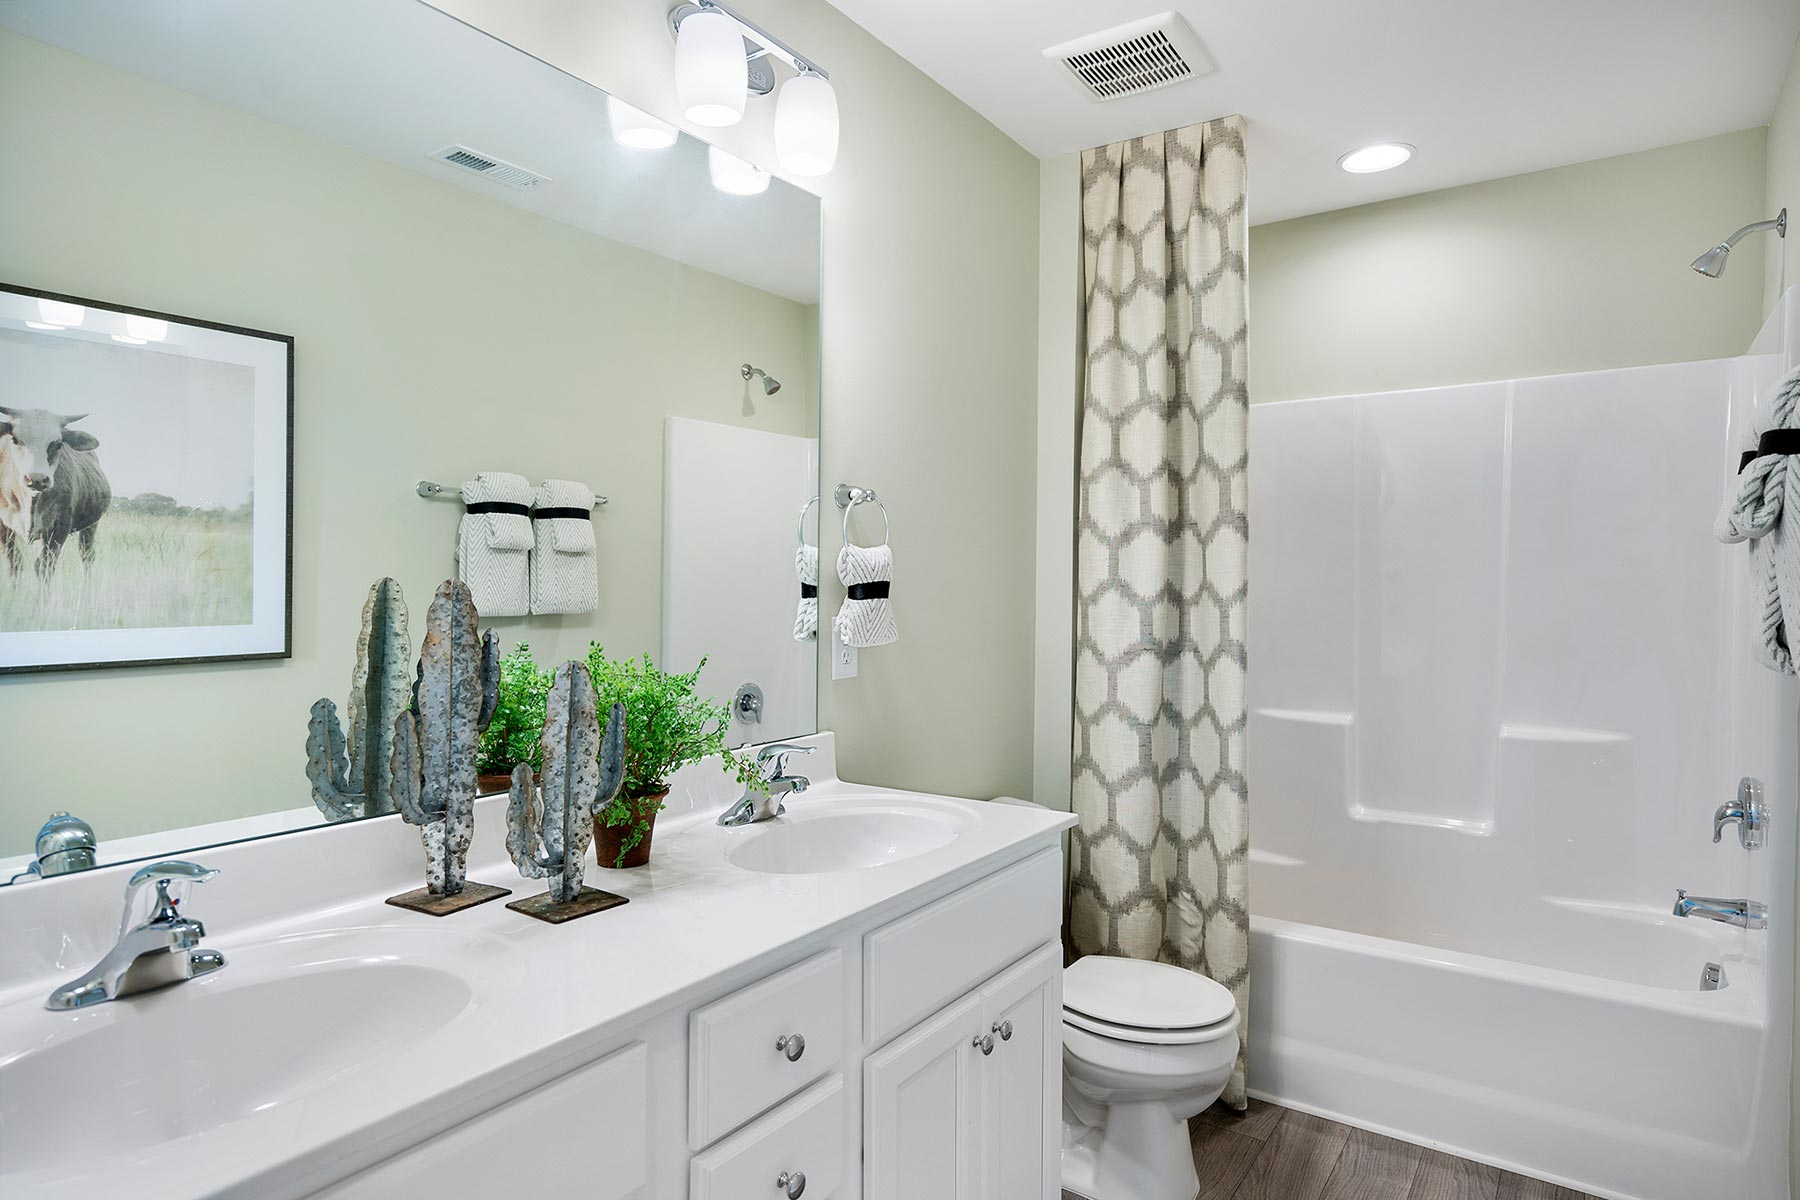 Amelia Plan Bath at Briar Gate in Fuquay-Varina North Carolina by Mattamy Homes